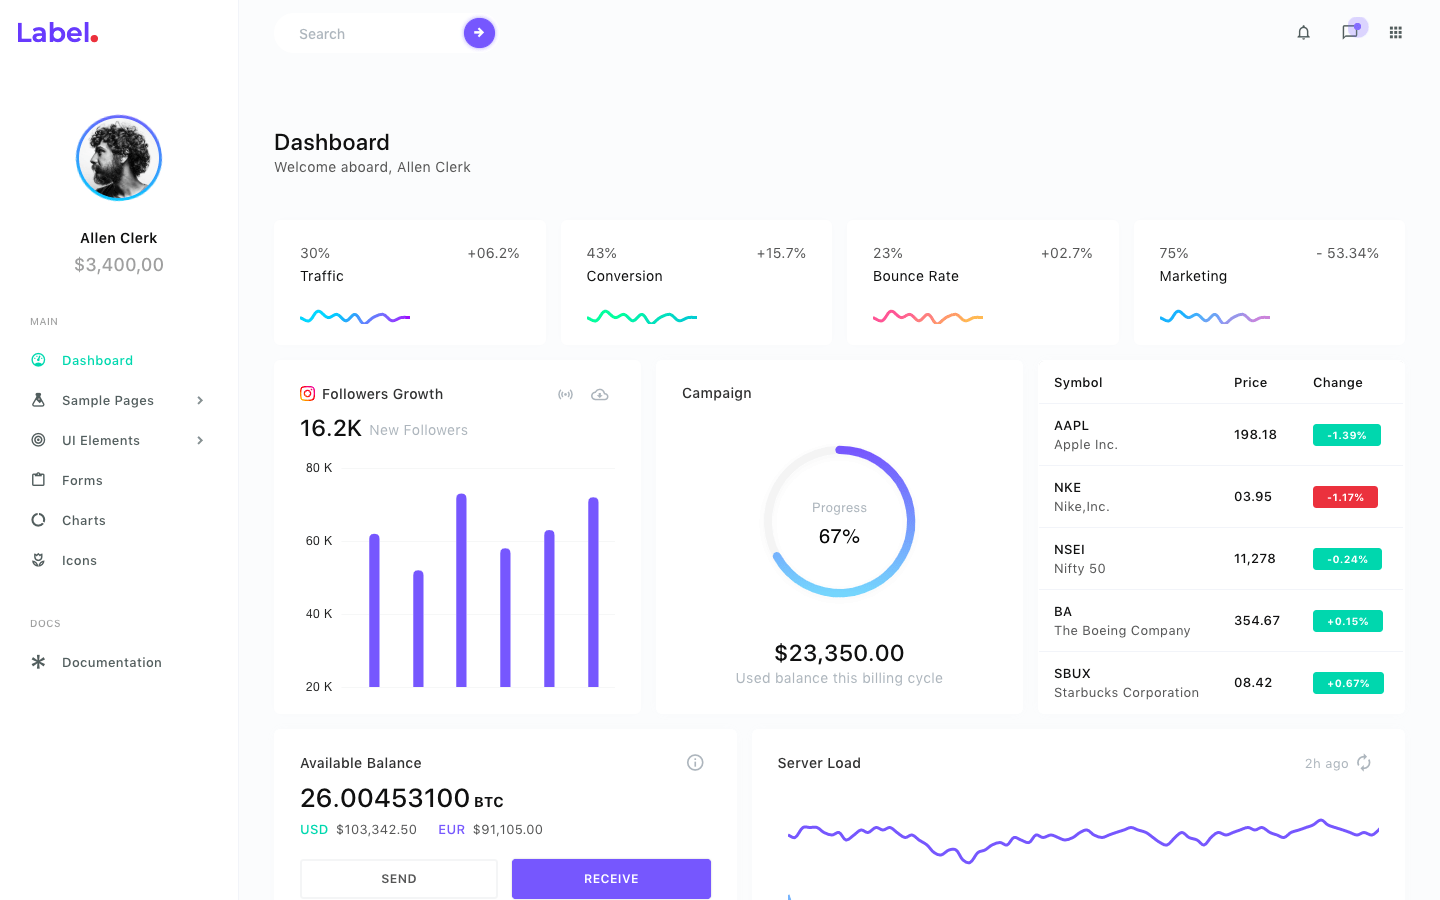 LabelUI Dashboard Web